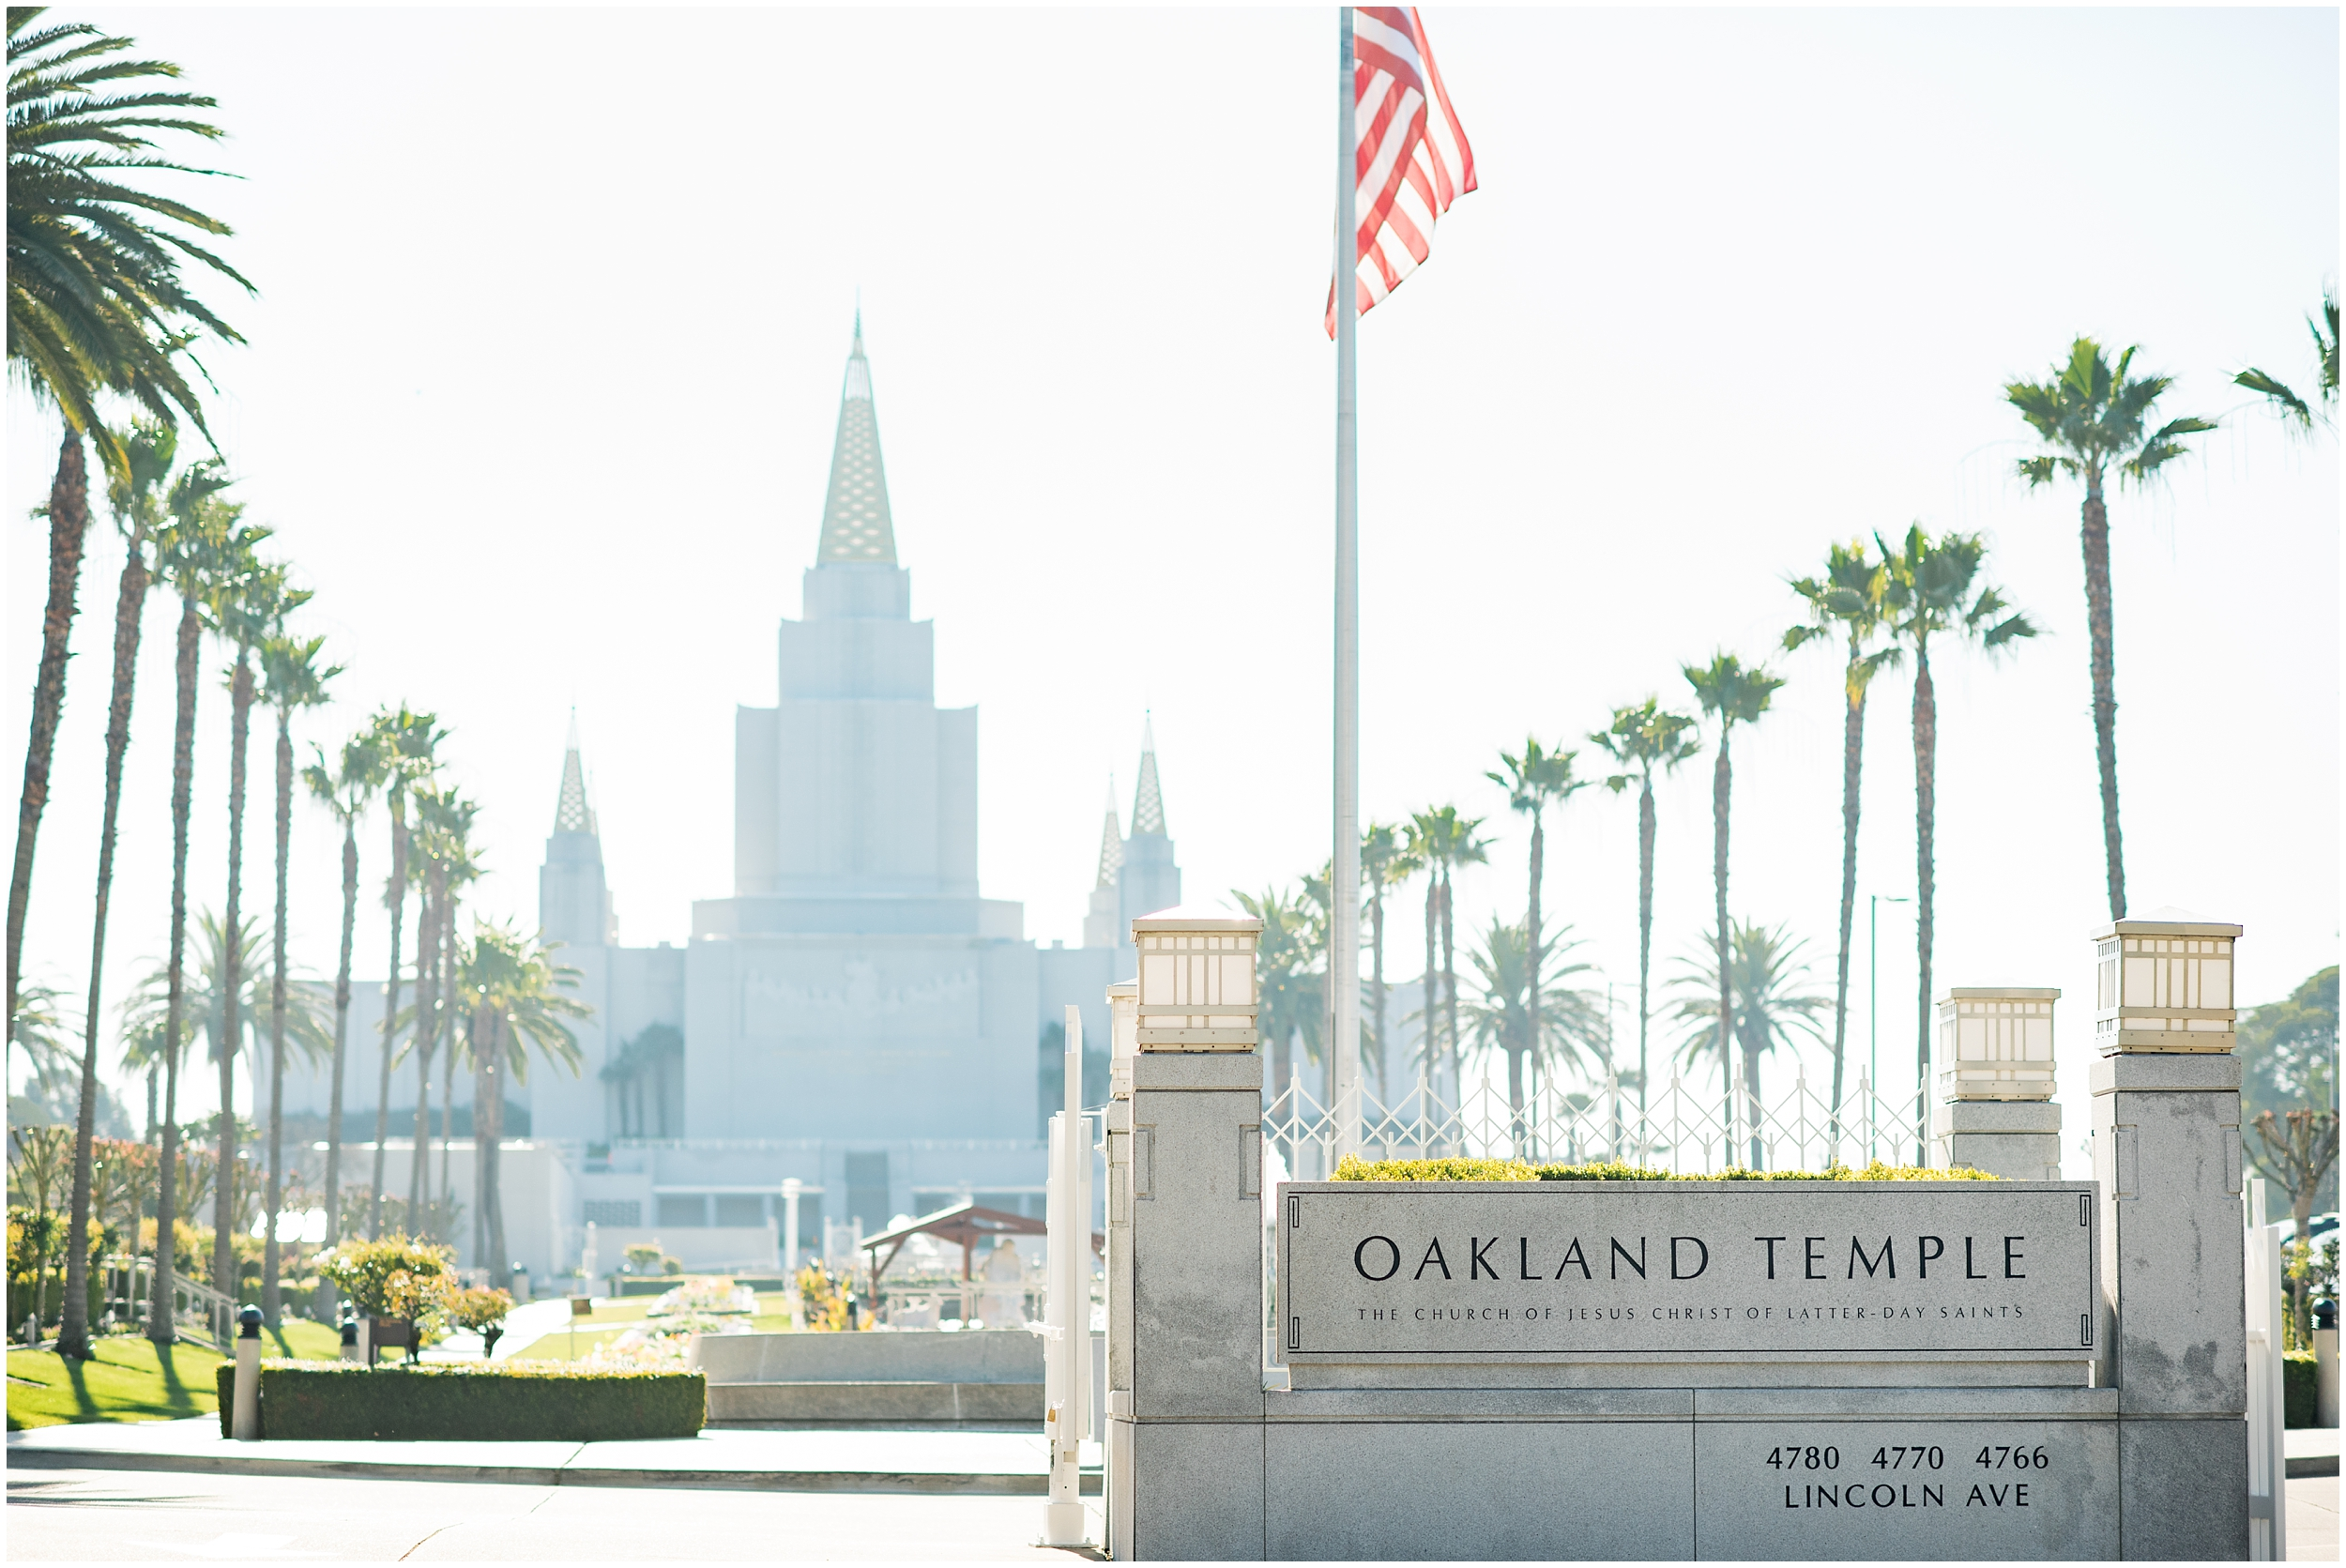 Oakland California temple wedding, Oakland California, classic car wedding, black suit, gray brides made dresses, destination wedding, white and green florals, Blackhawk museum, Blackhawk museum wedding reception, Utah wedding photographers, Utah wedding photographer, Utah wedding photography, Utah county wedding photography, Utah county wedding photographer, salt lake city photographers, salt lake city wedding photography, salt lake photographers, salt lake city photographers, photographers in Utah, Utah photography, photography Utah, photographer Utah, Kristina Curtis photography, Kristina Curtis Photographer, www.kristinacurtisphotography.com